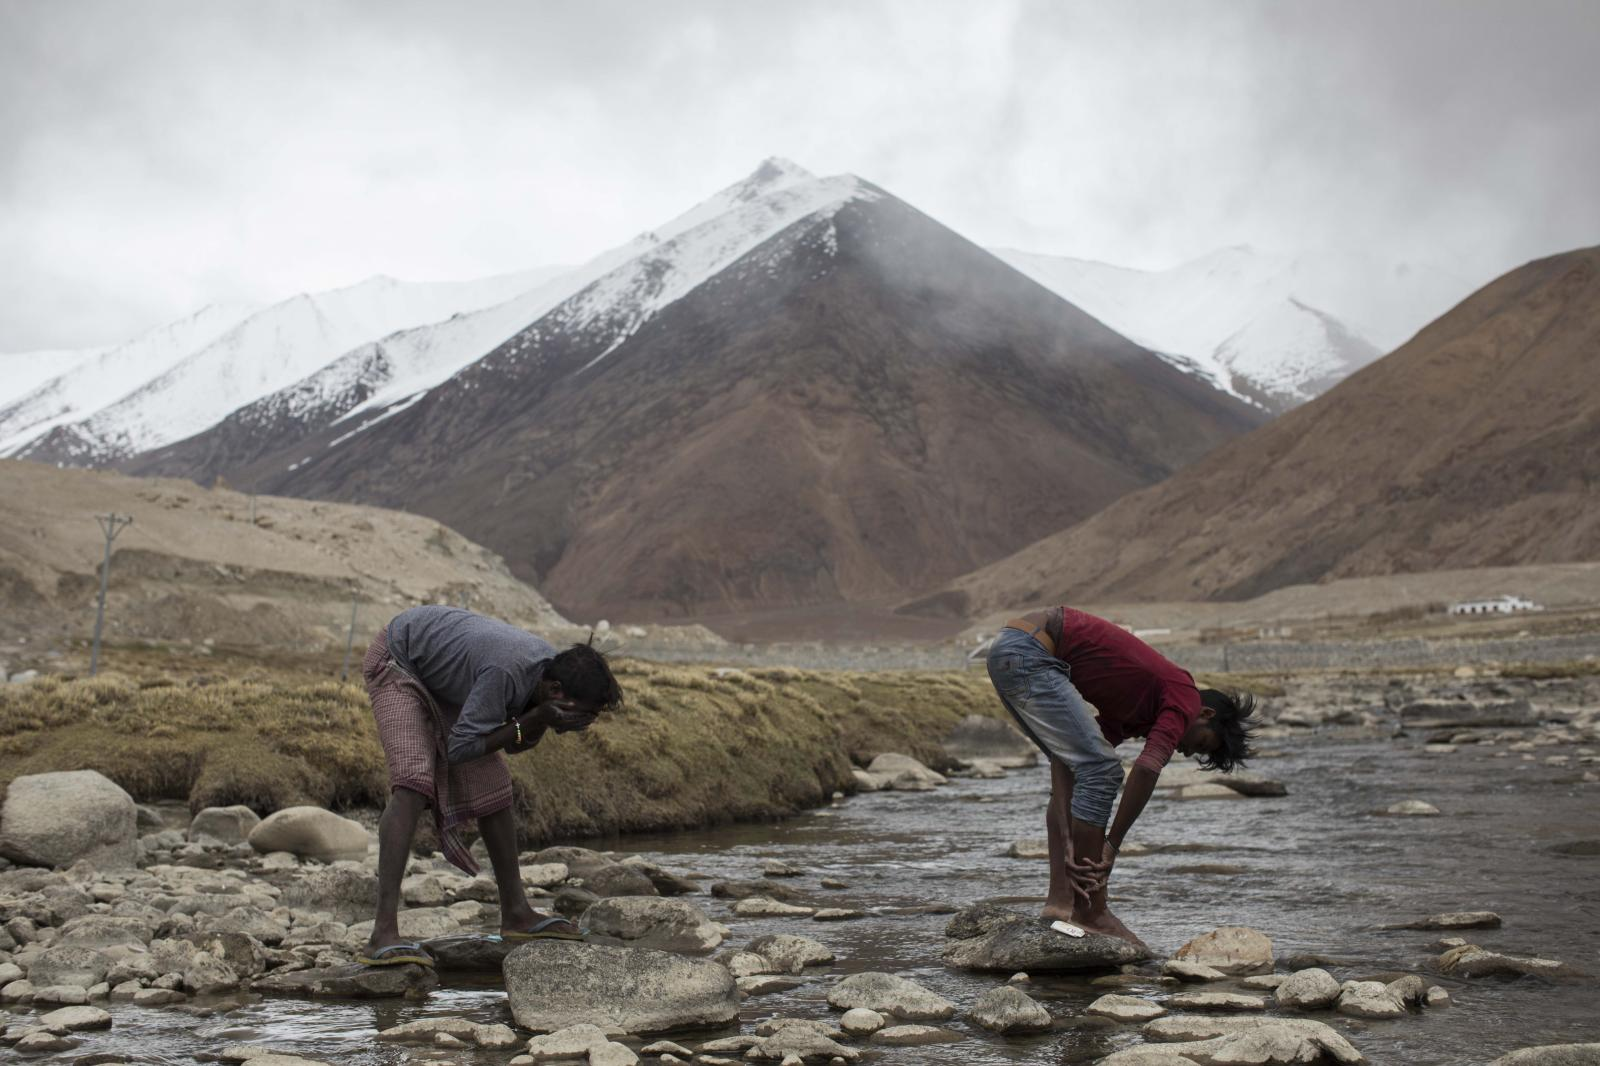 Raju Dheri (R), 19, and Surinder Tudu, 22, road maintenance workers from Jharkhand state, wash in a river next to their campsite after a day's work near Tangtse village in northern India's Ladakh region.